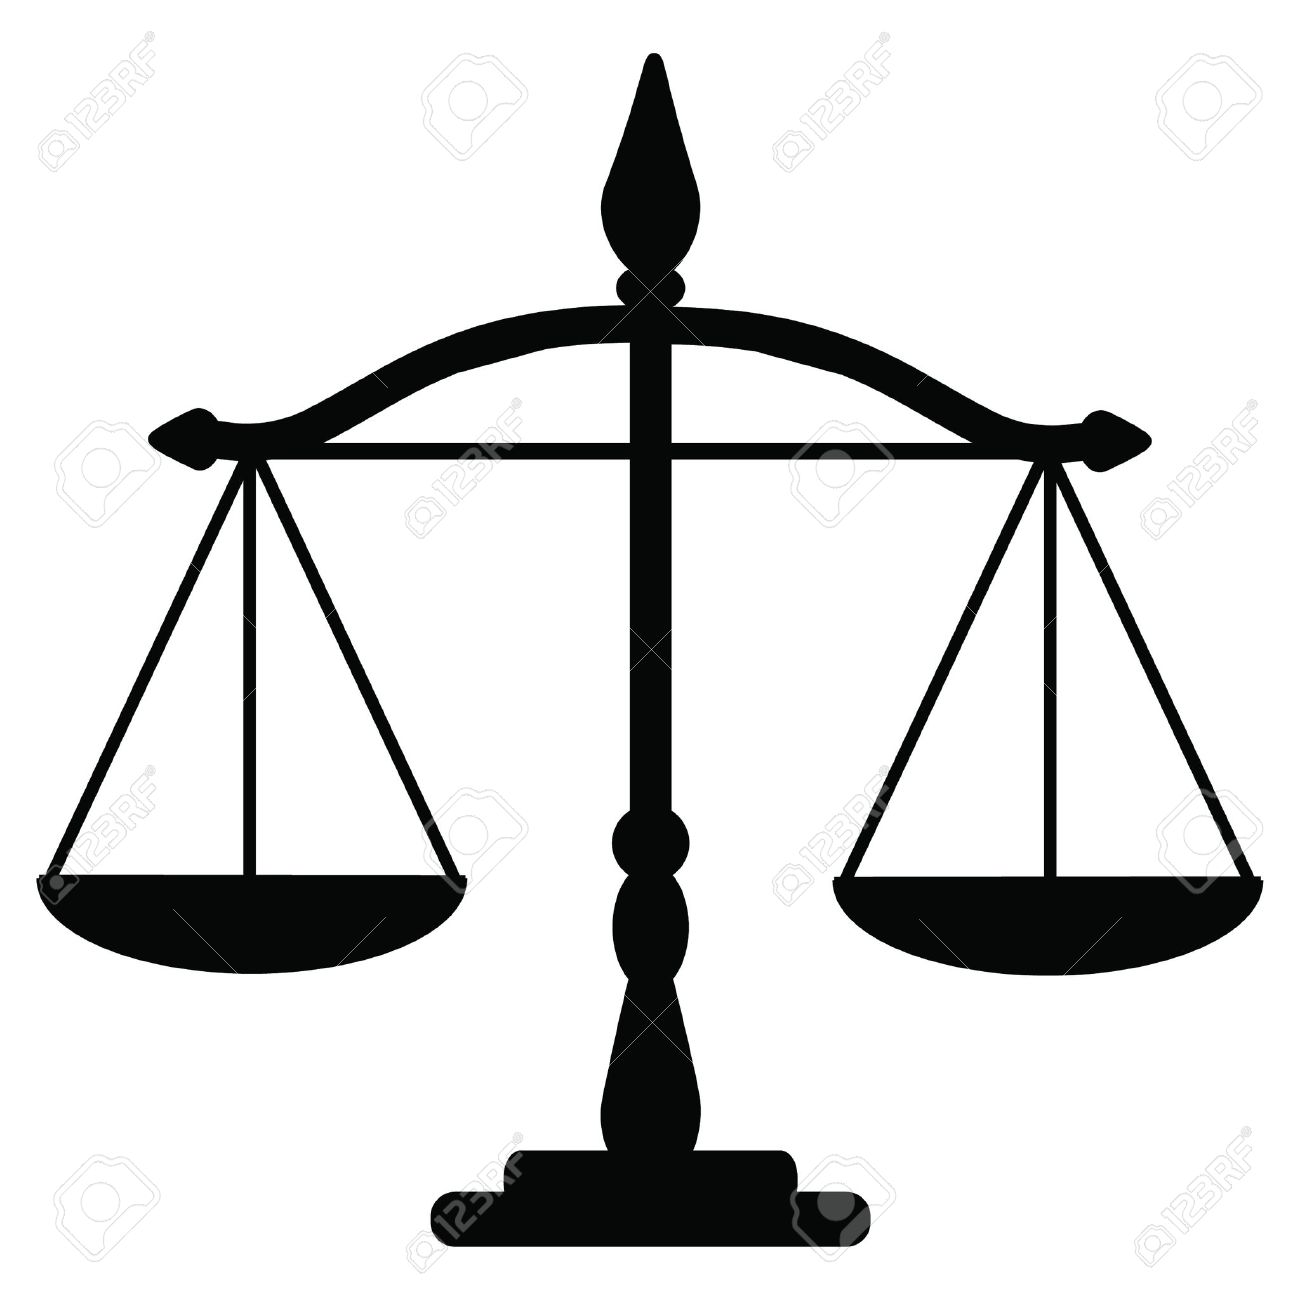 vector illustration of justice scales royalty free cliparts vectors rh 123rf com vector scale people vector scalar